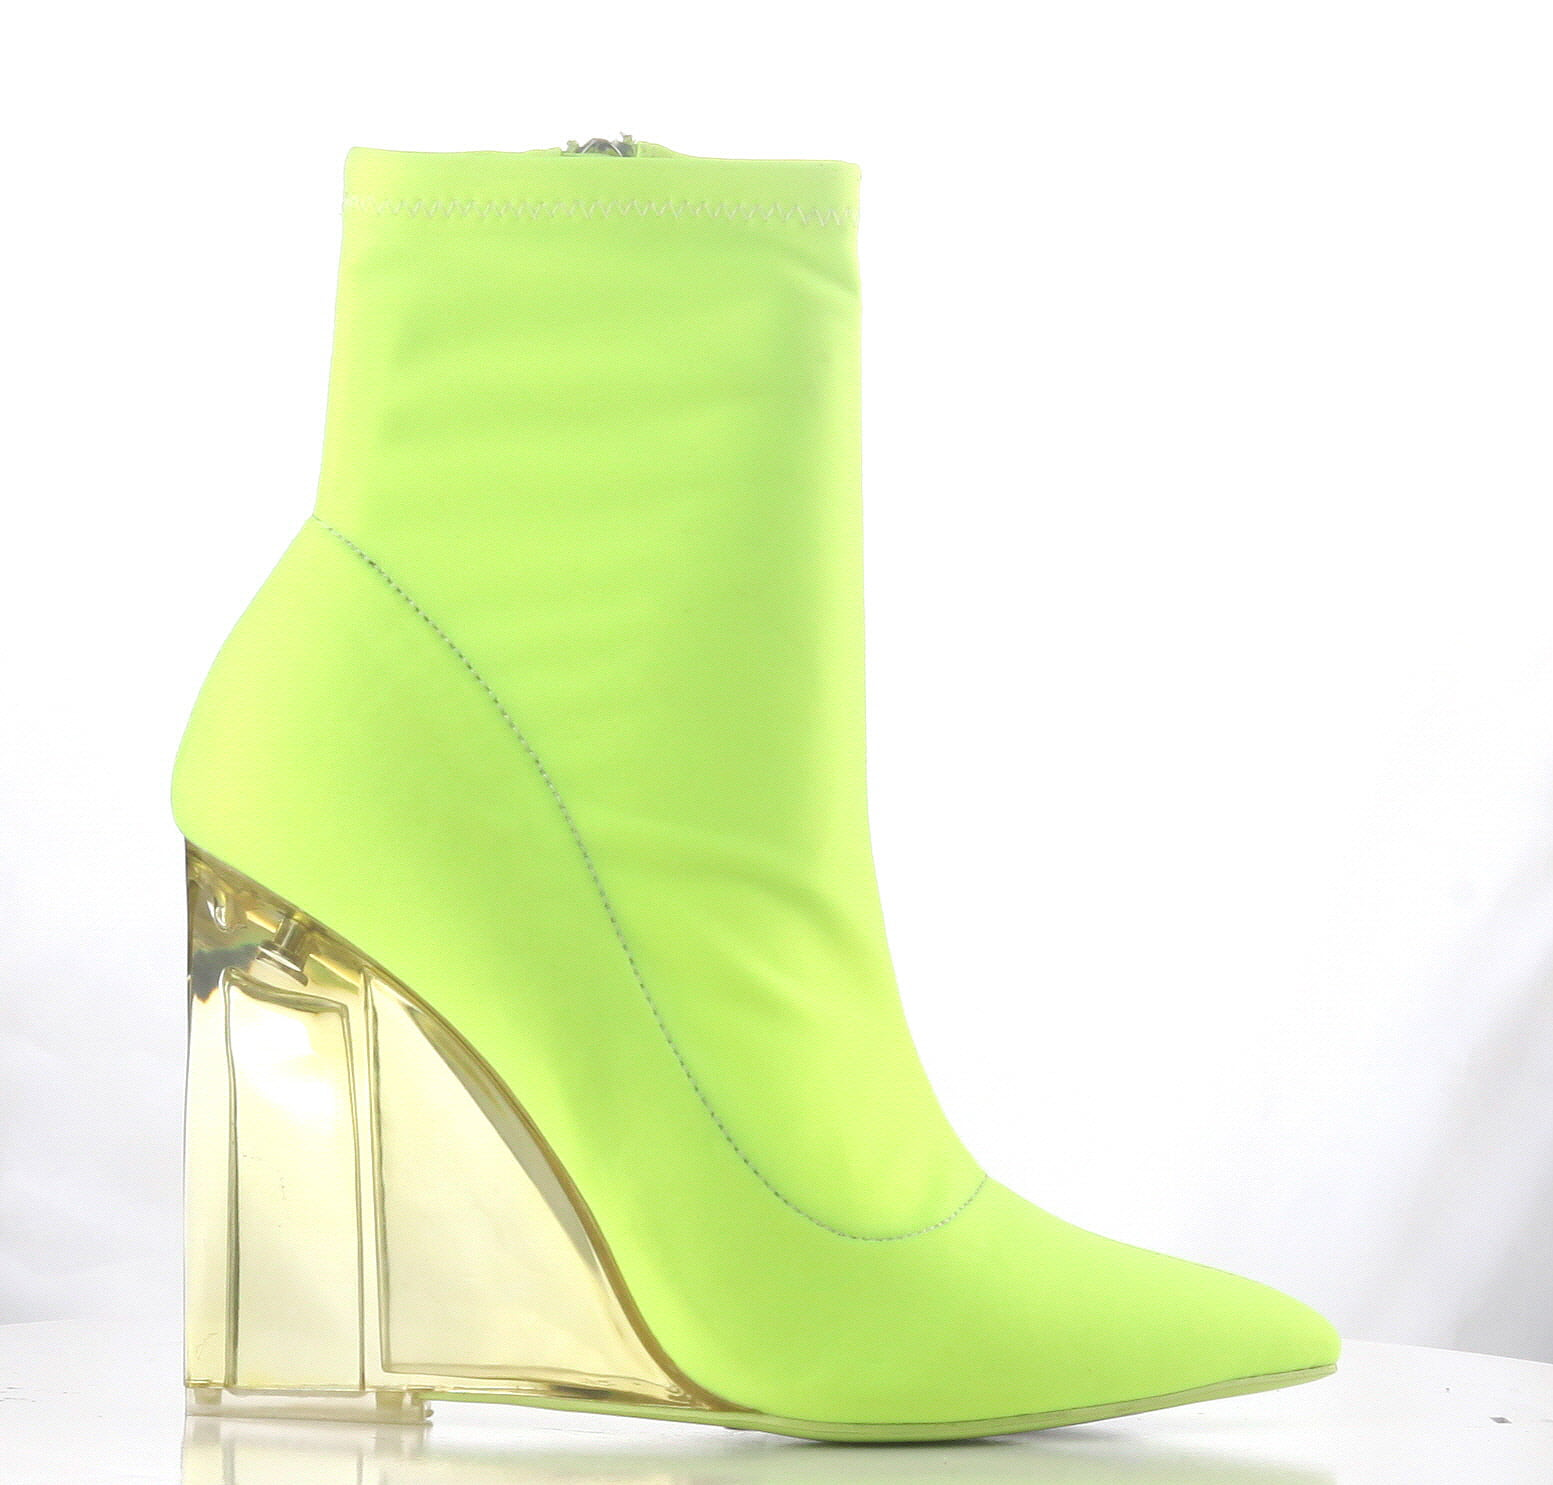 Cape Robbin Sporty Mystic-2 Neon Yellow Fitted Sporty Robbin Bootie Clear Lucite Pointed Boot (7.5) 843d4d